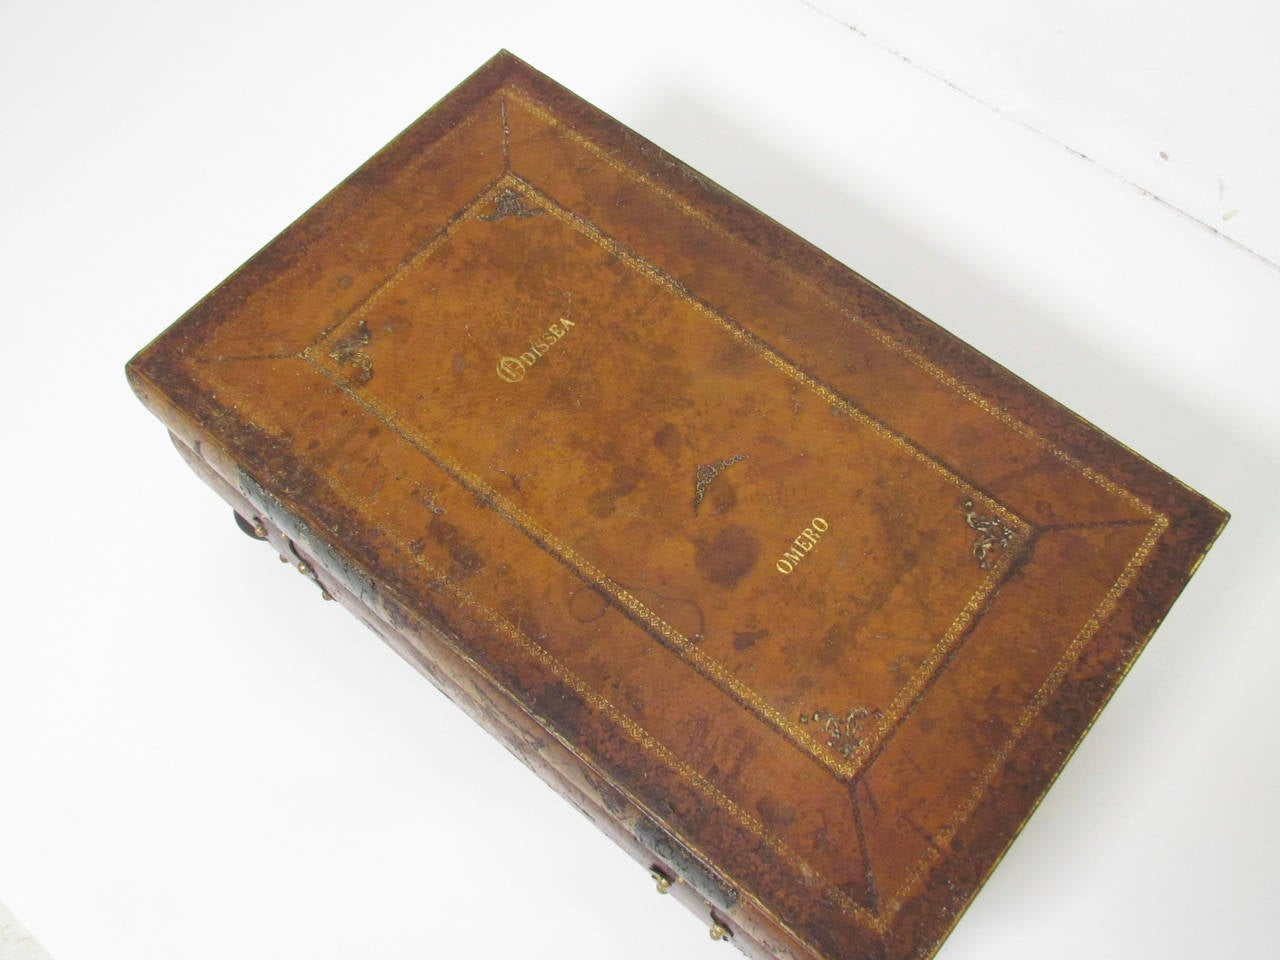 Italian Leather Book Form Table in manner of Maitland - Smith 4